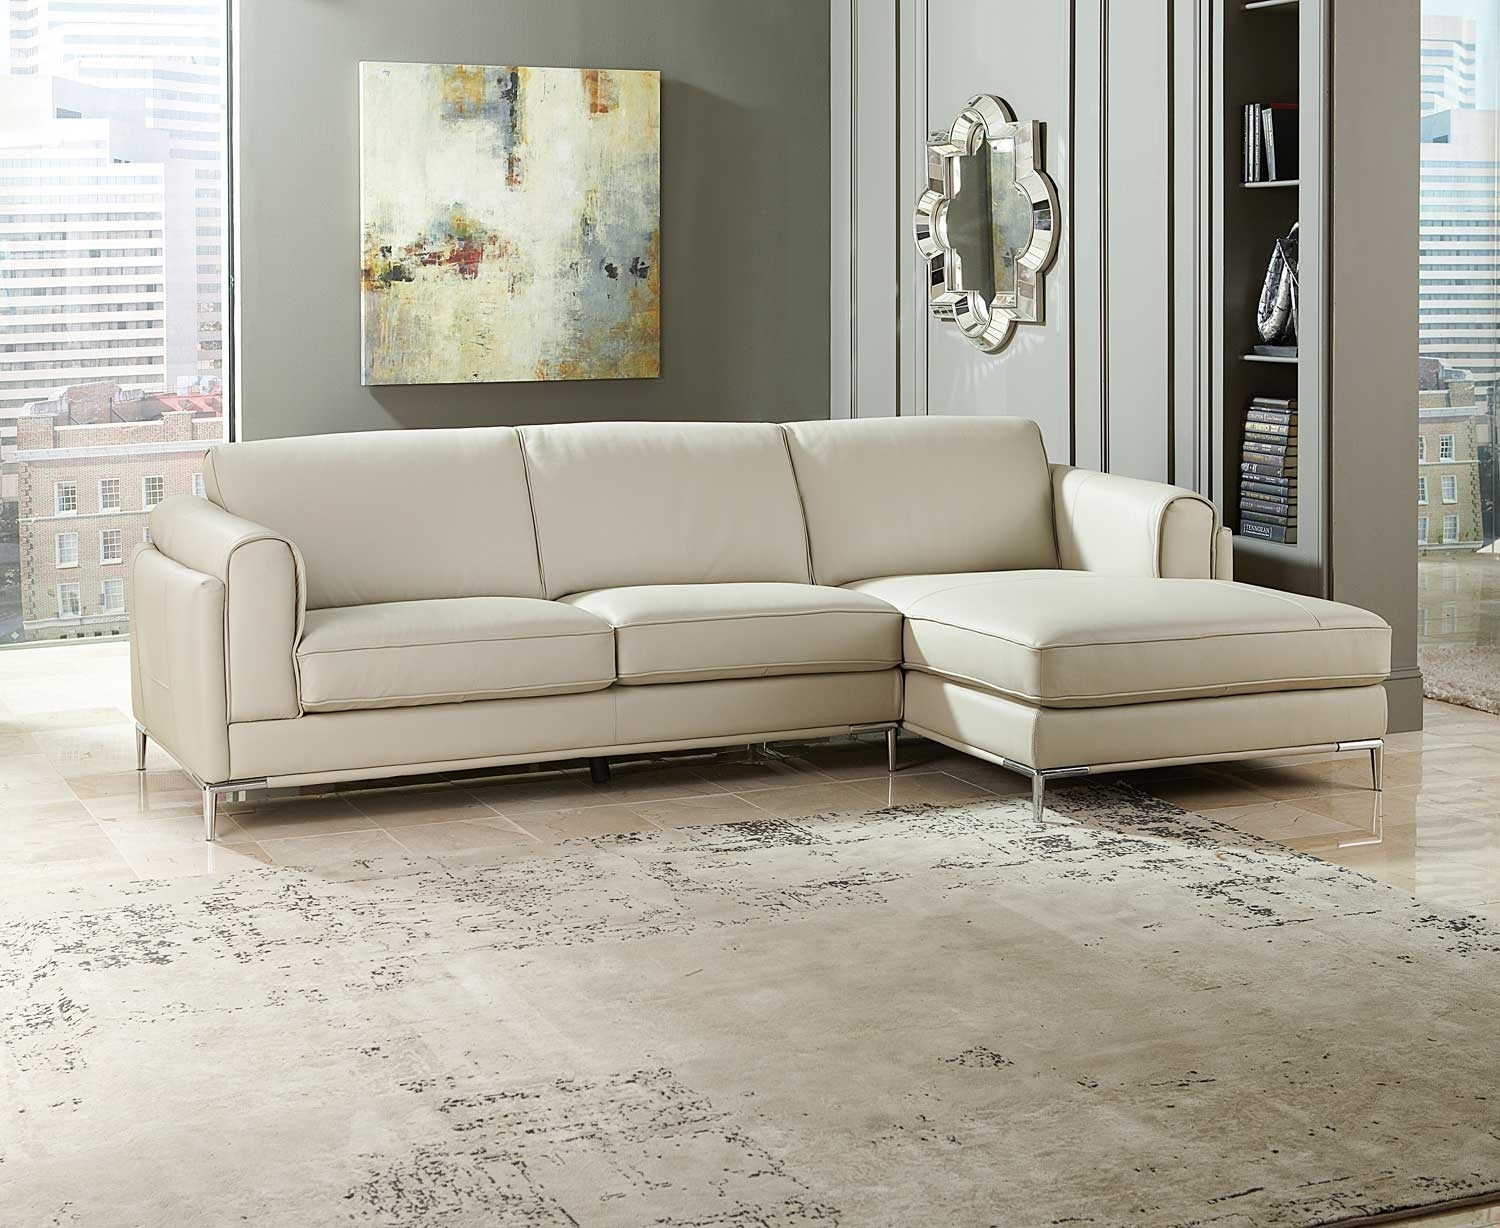 Homelegance Hugo Sectional Sofa – Beige Top Grain Leather & Split Throughout Beige Sectional Sofas (Image 5 of 10)